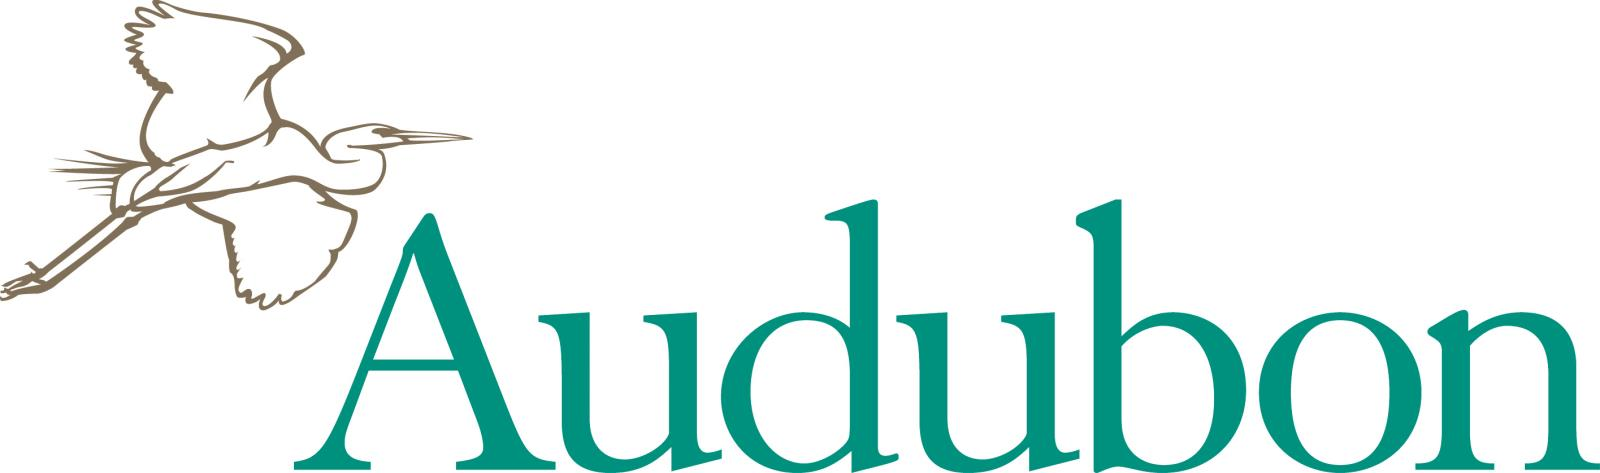 National Audubon Society Logo - Sm